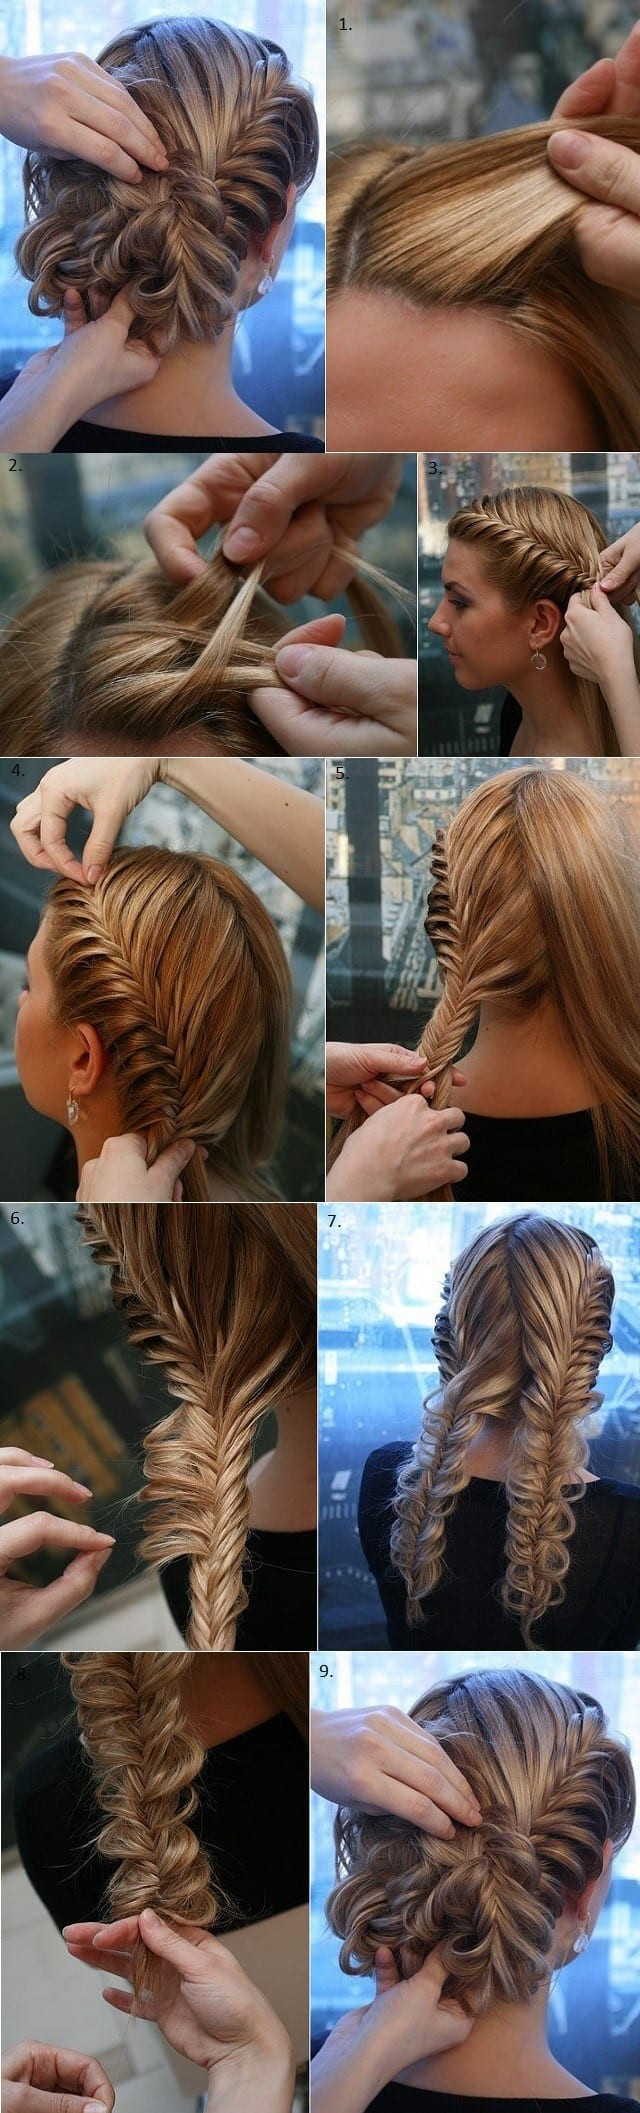 How-to-Make-Beaided-hairstyle 20 Cute and Easy Braided Hairstyle Tutorials